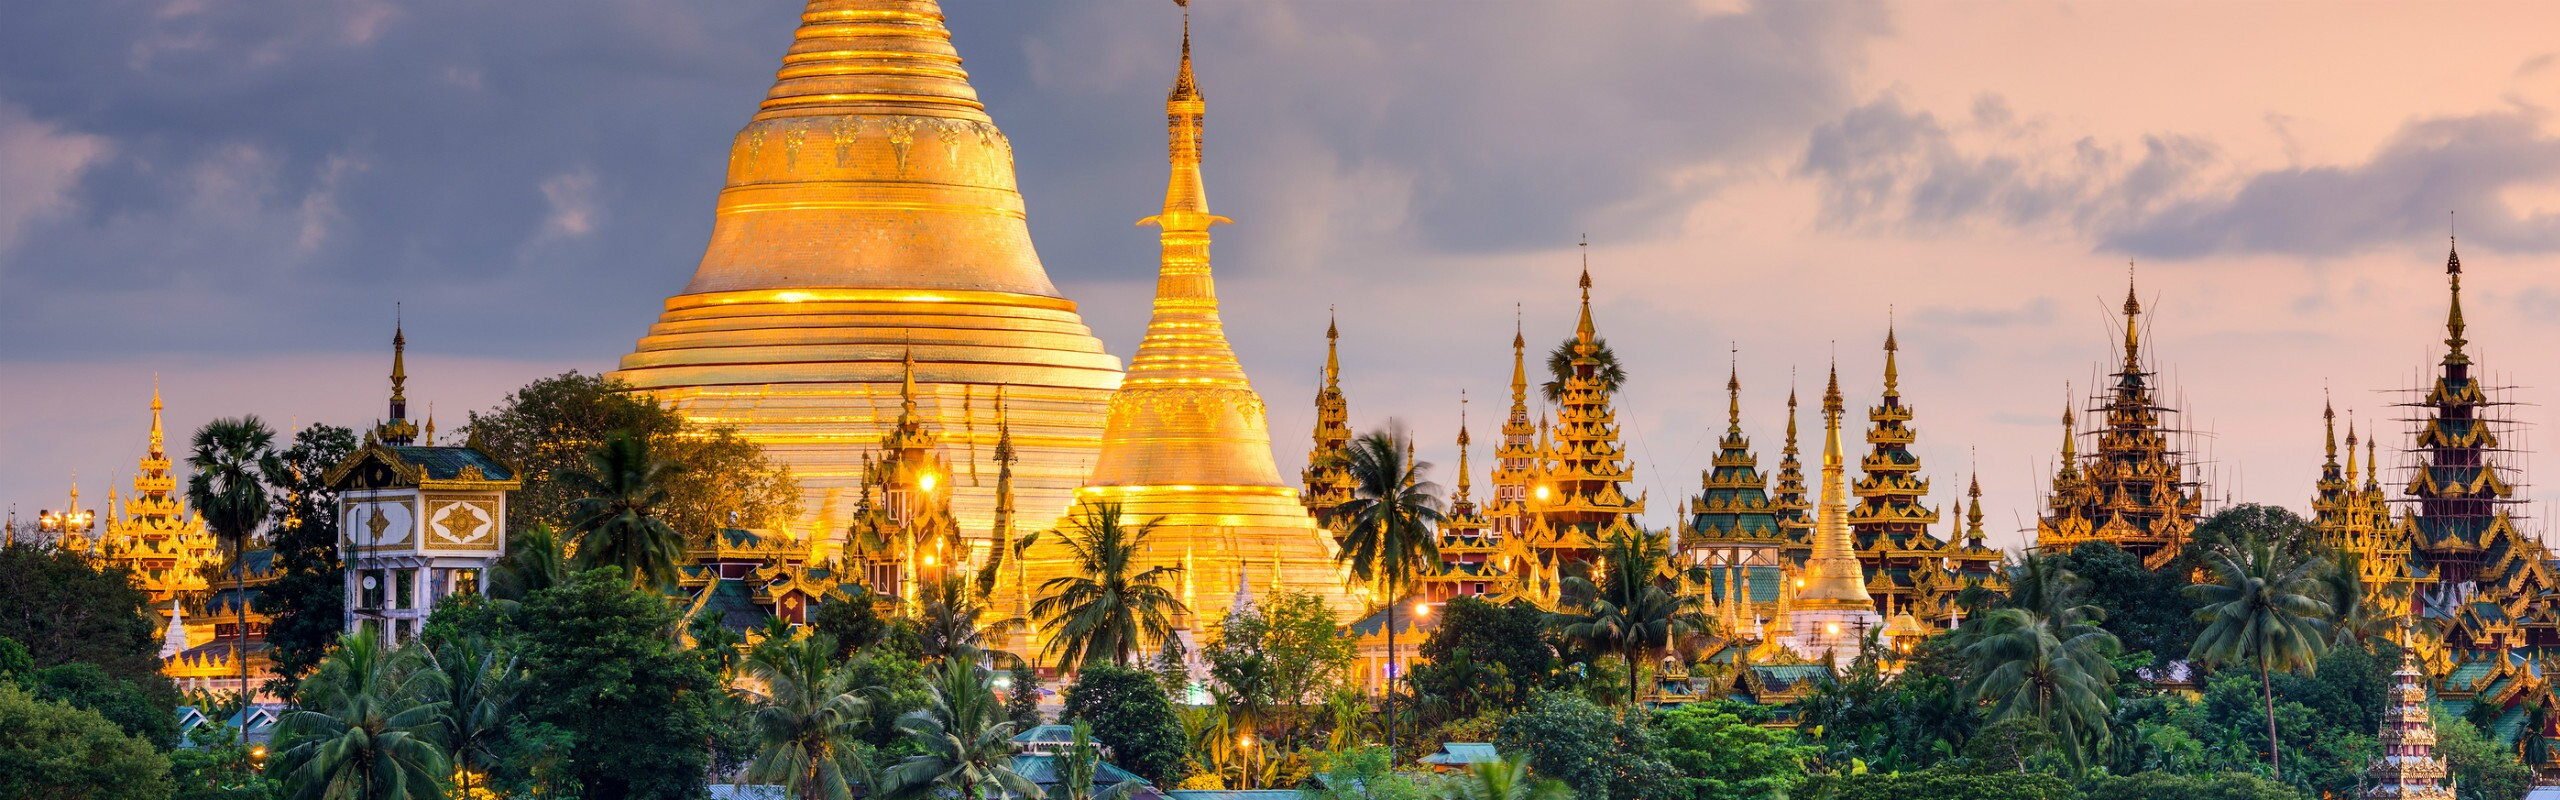 Responsible Travel in Myanmar - How to Travel Responsibly